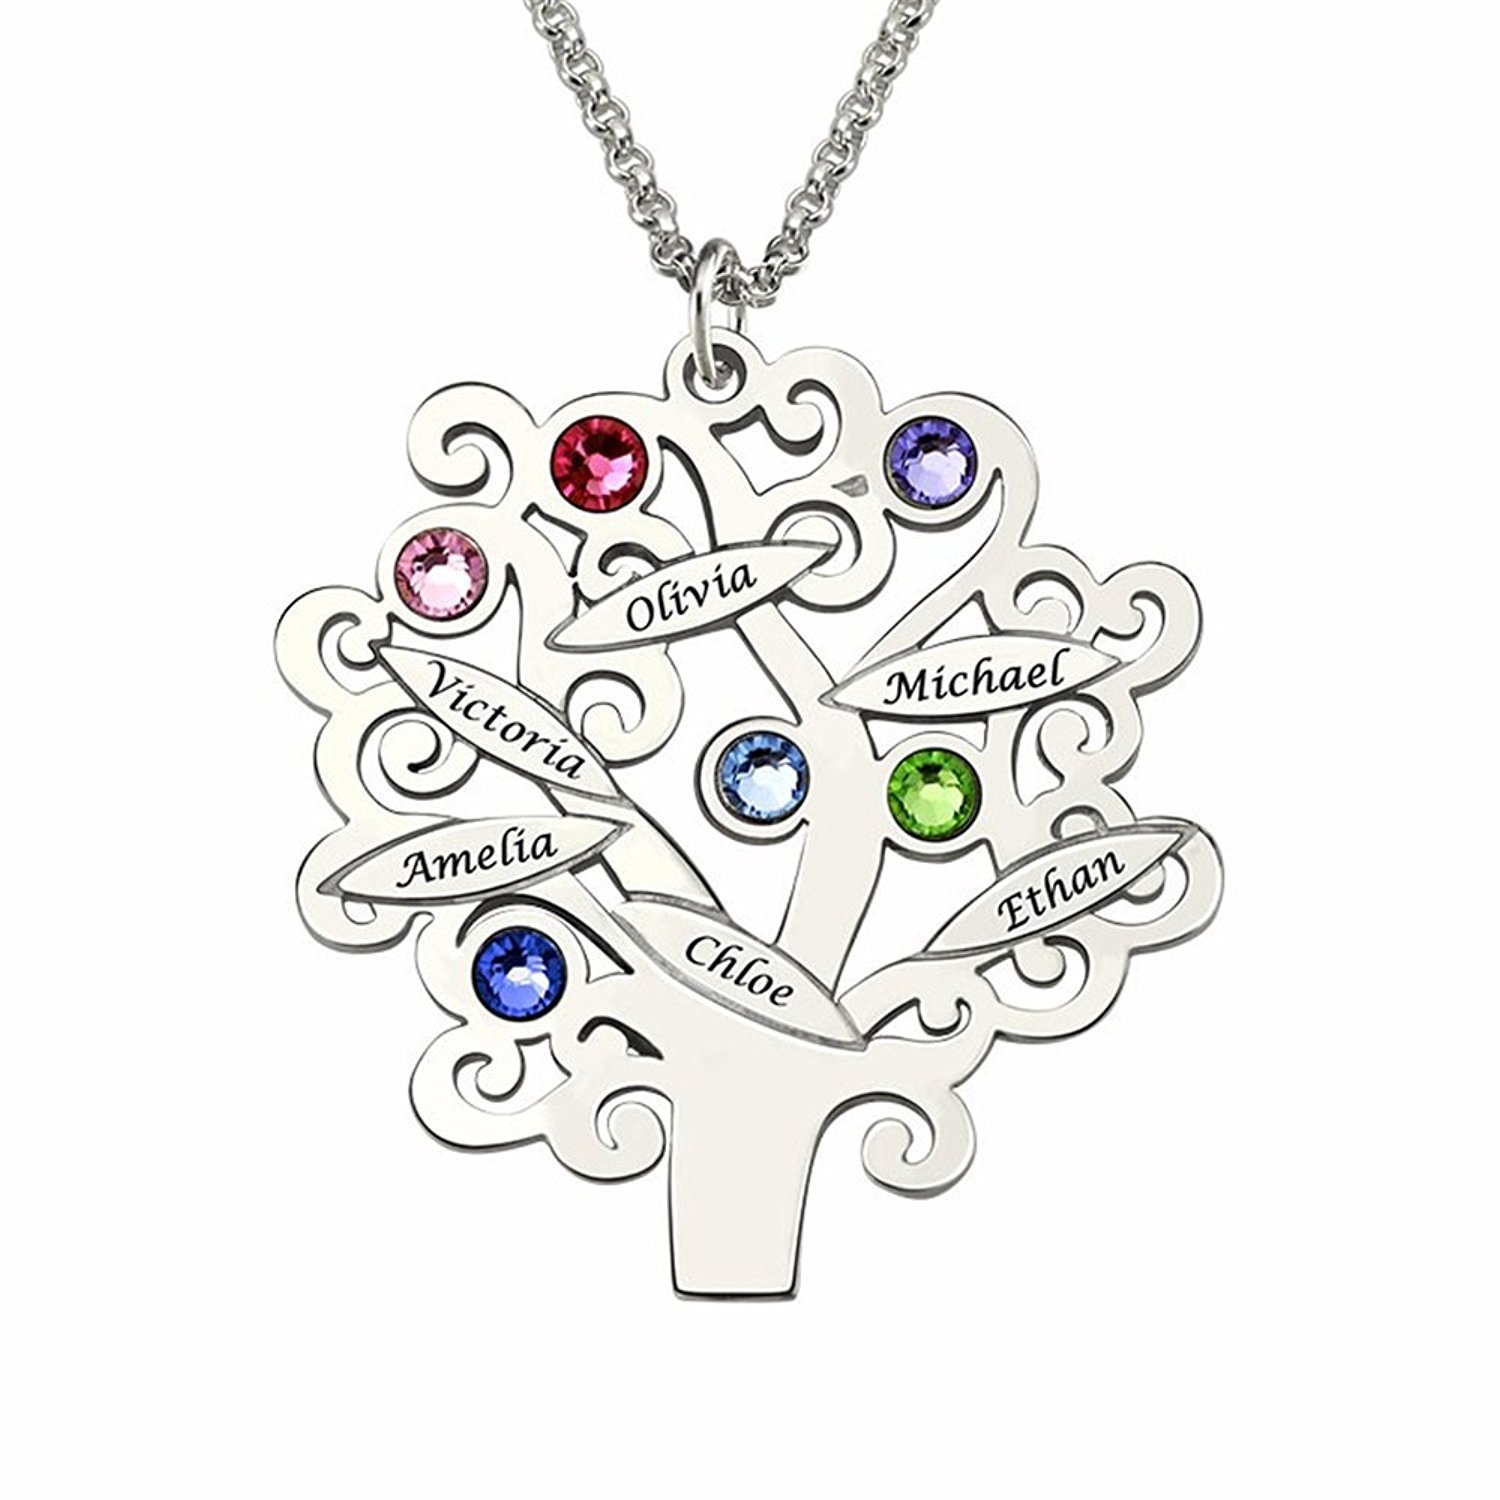 Personalized Family Tree Necklace with Birthstones Sterling Silver Name Necklace for Mom